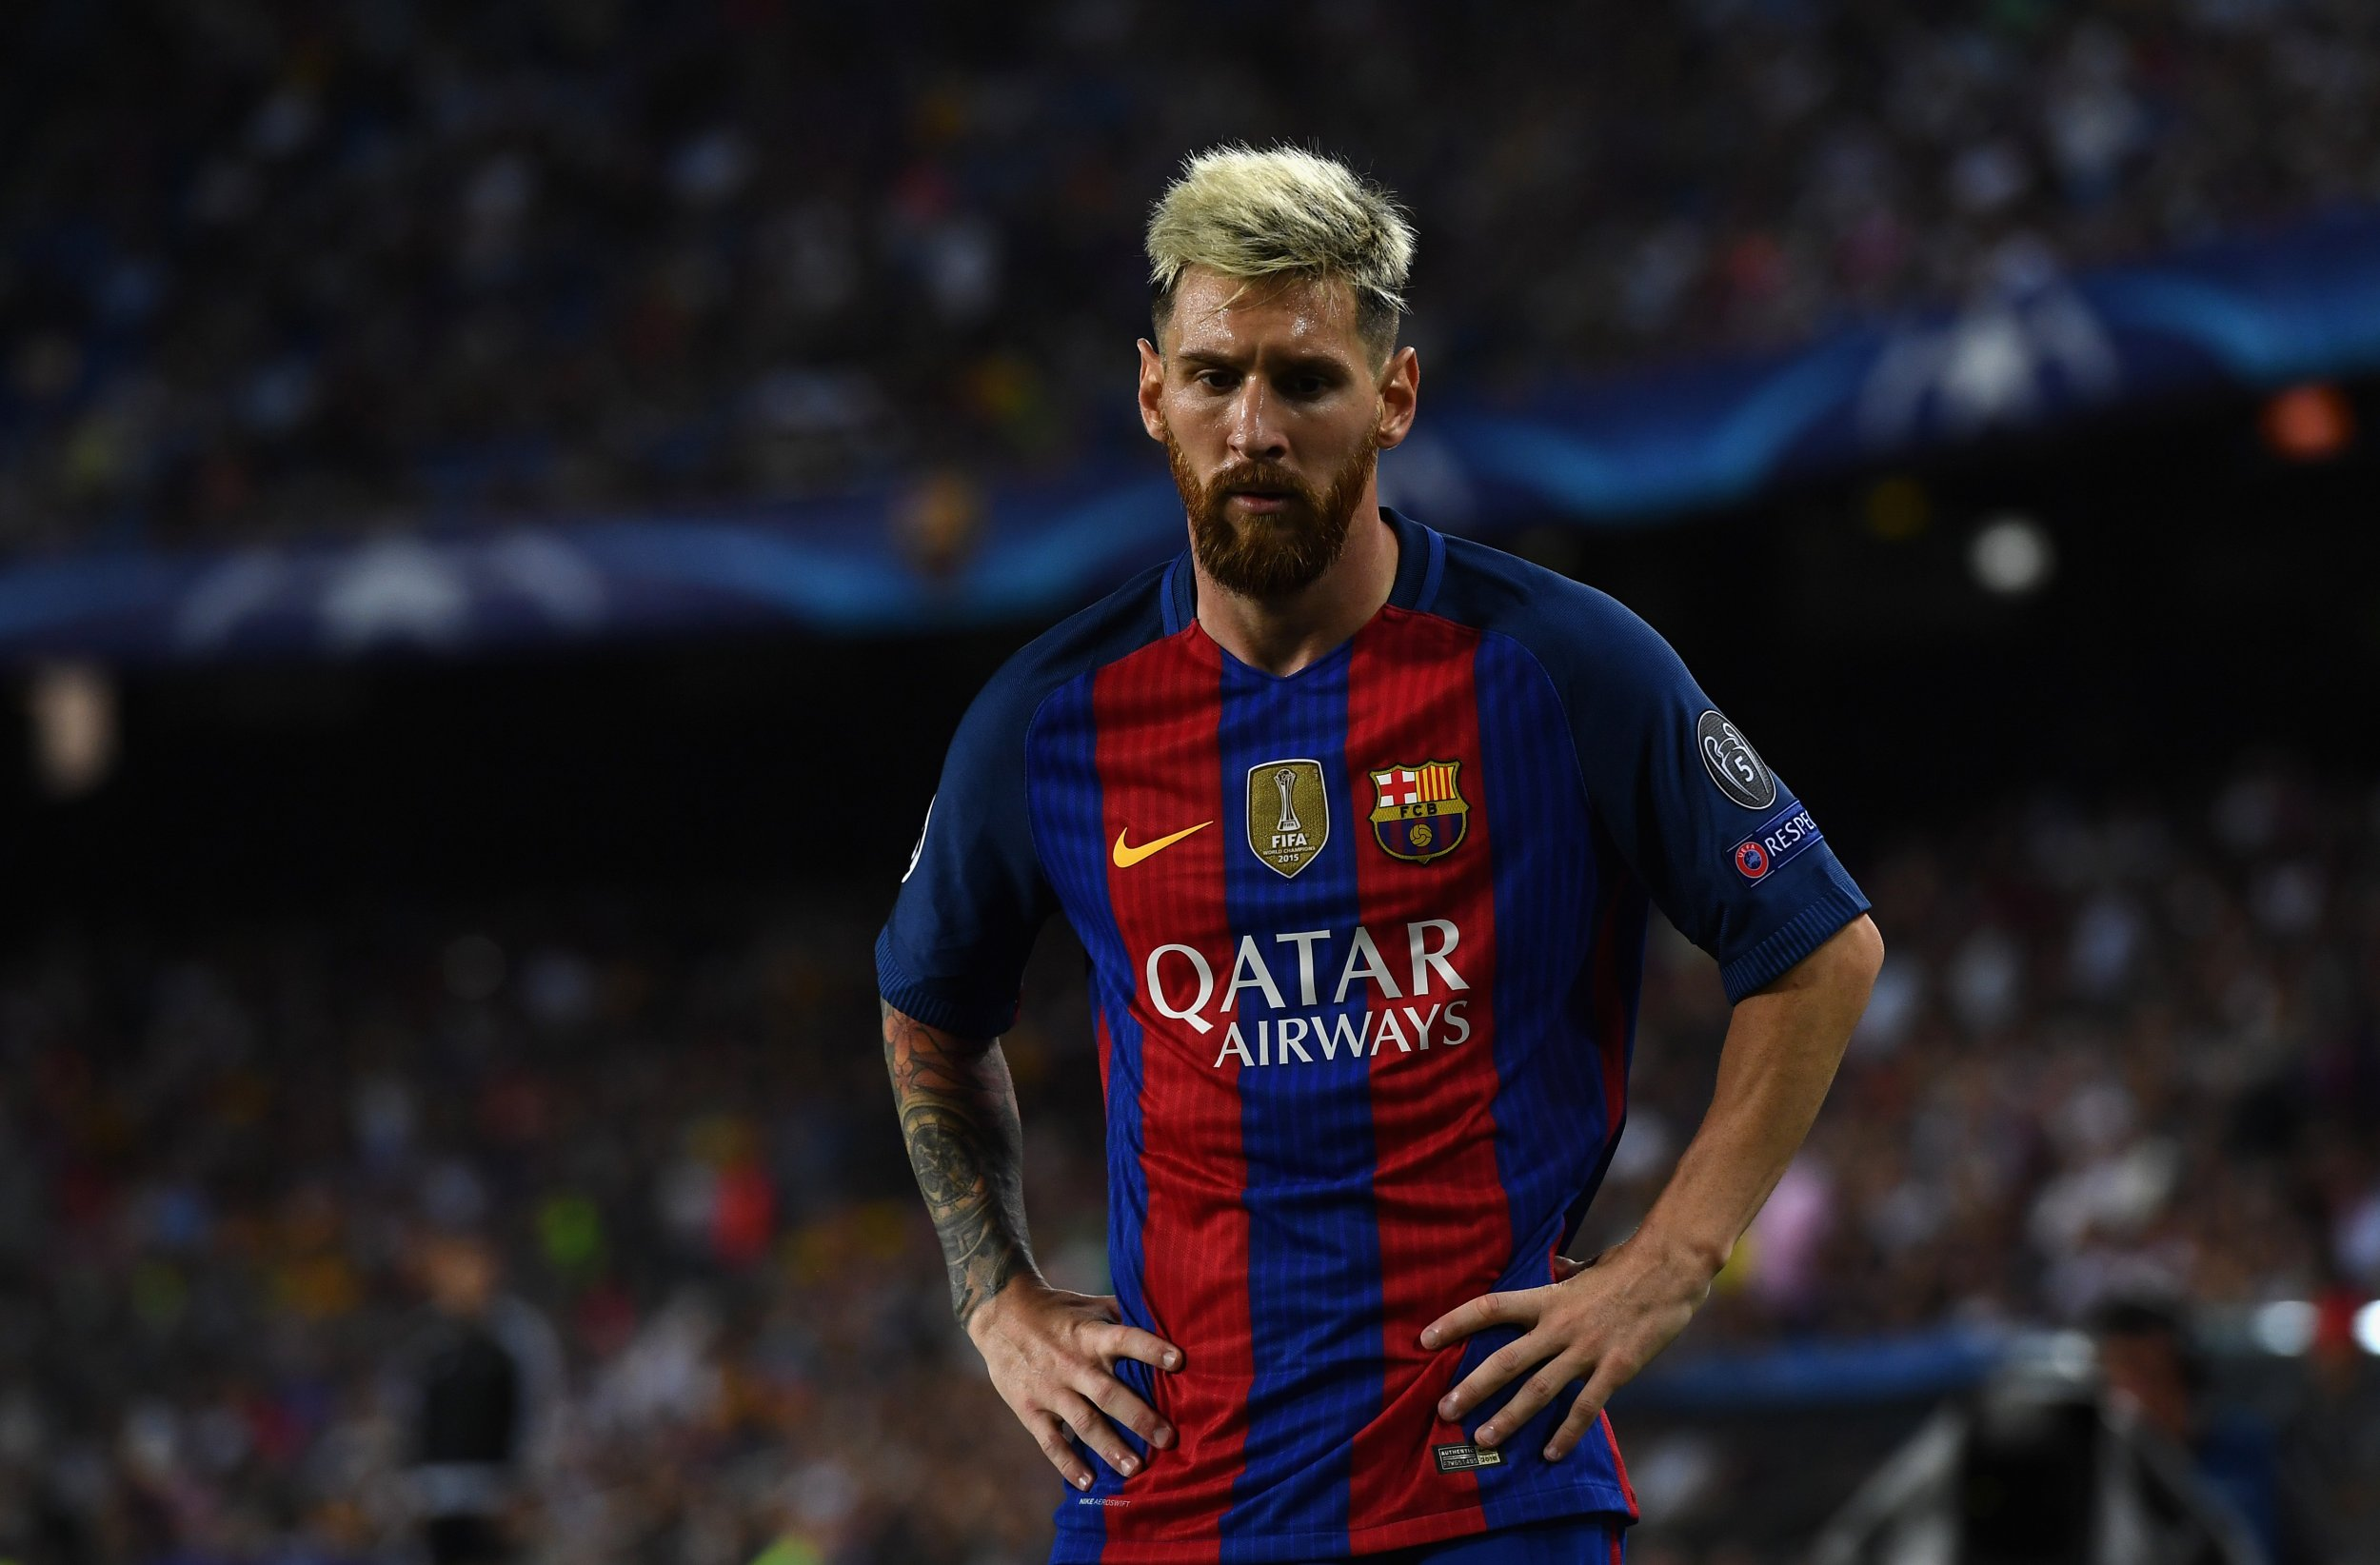 Dybala Hd Wallpaper Lionel Messi Leaving Barcelona Like My Father Dying